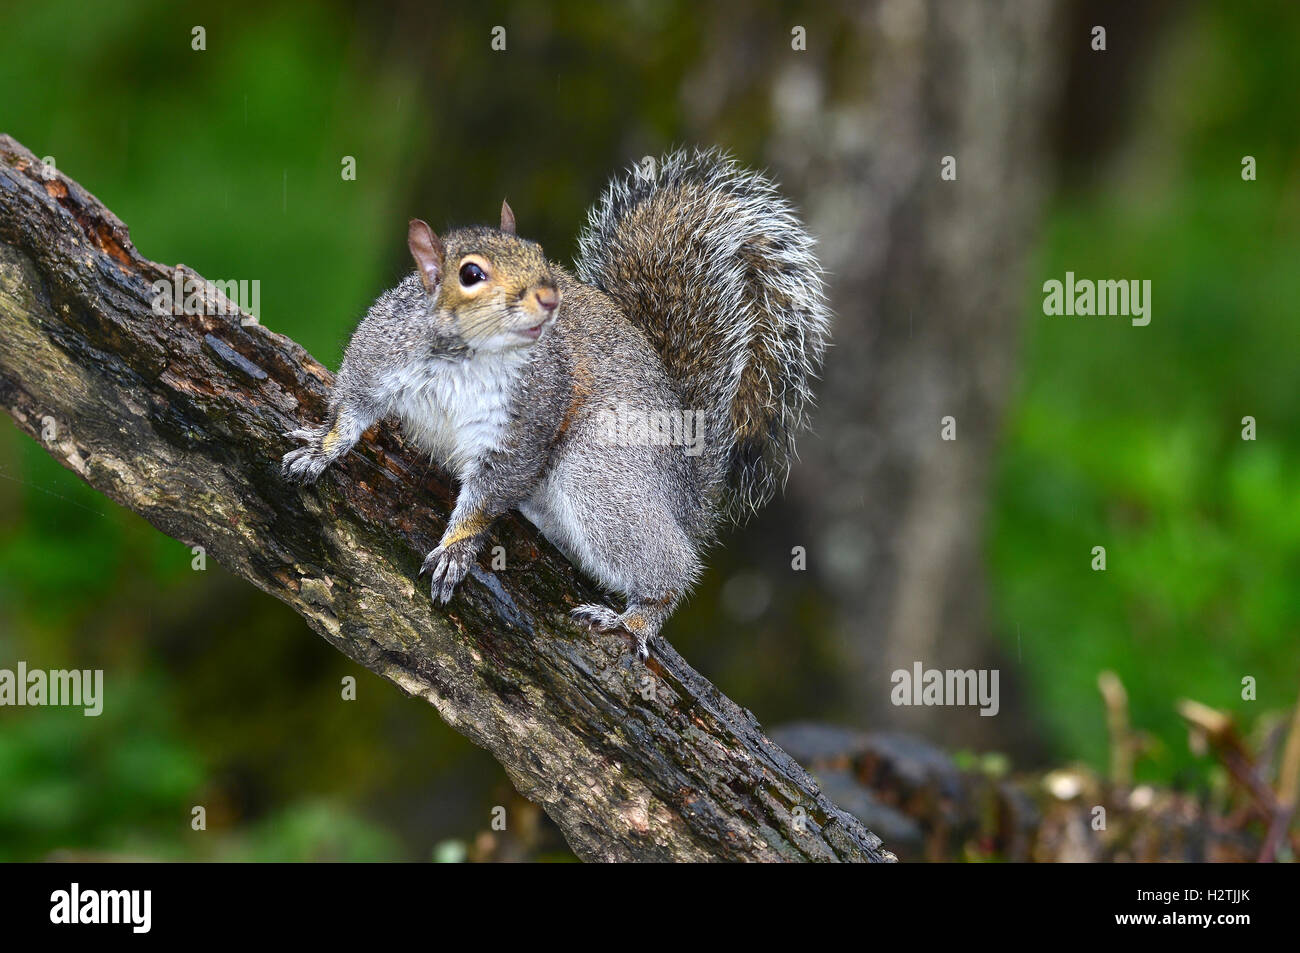 A grey squirrel on a branch UK - Stock Image